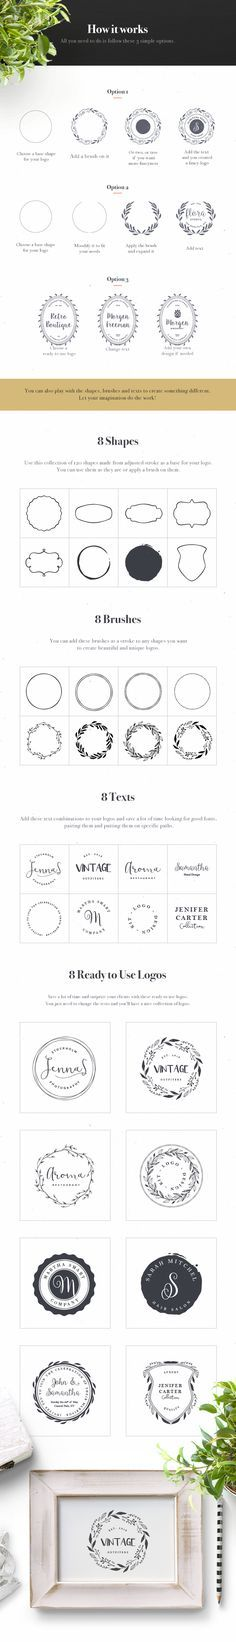 Today we have for you a logo design kit that will help you create gorgeous invitations, labels, apparel, and branding...                                                                                                                                                                                 More